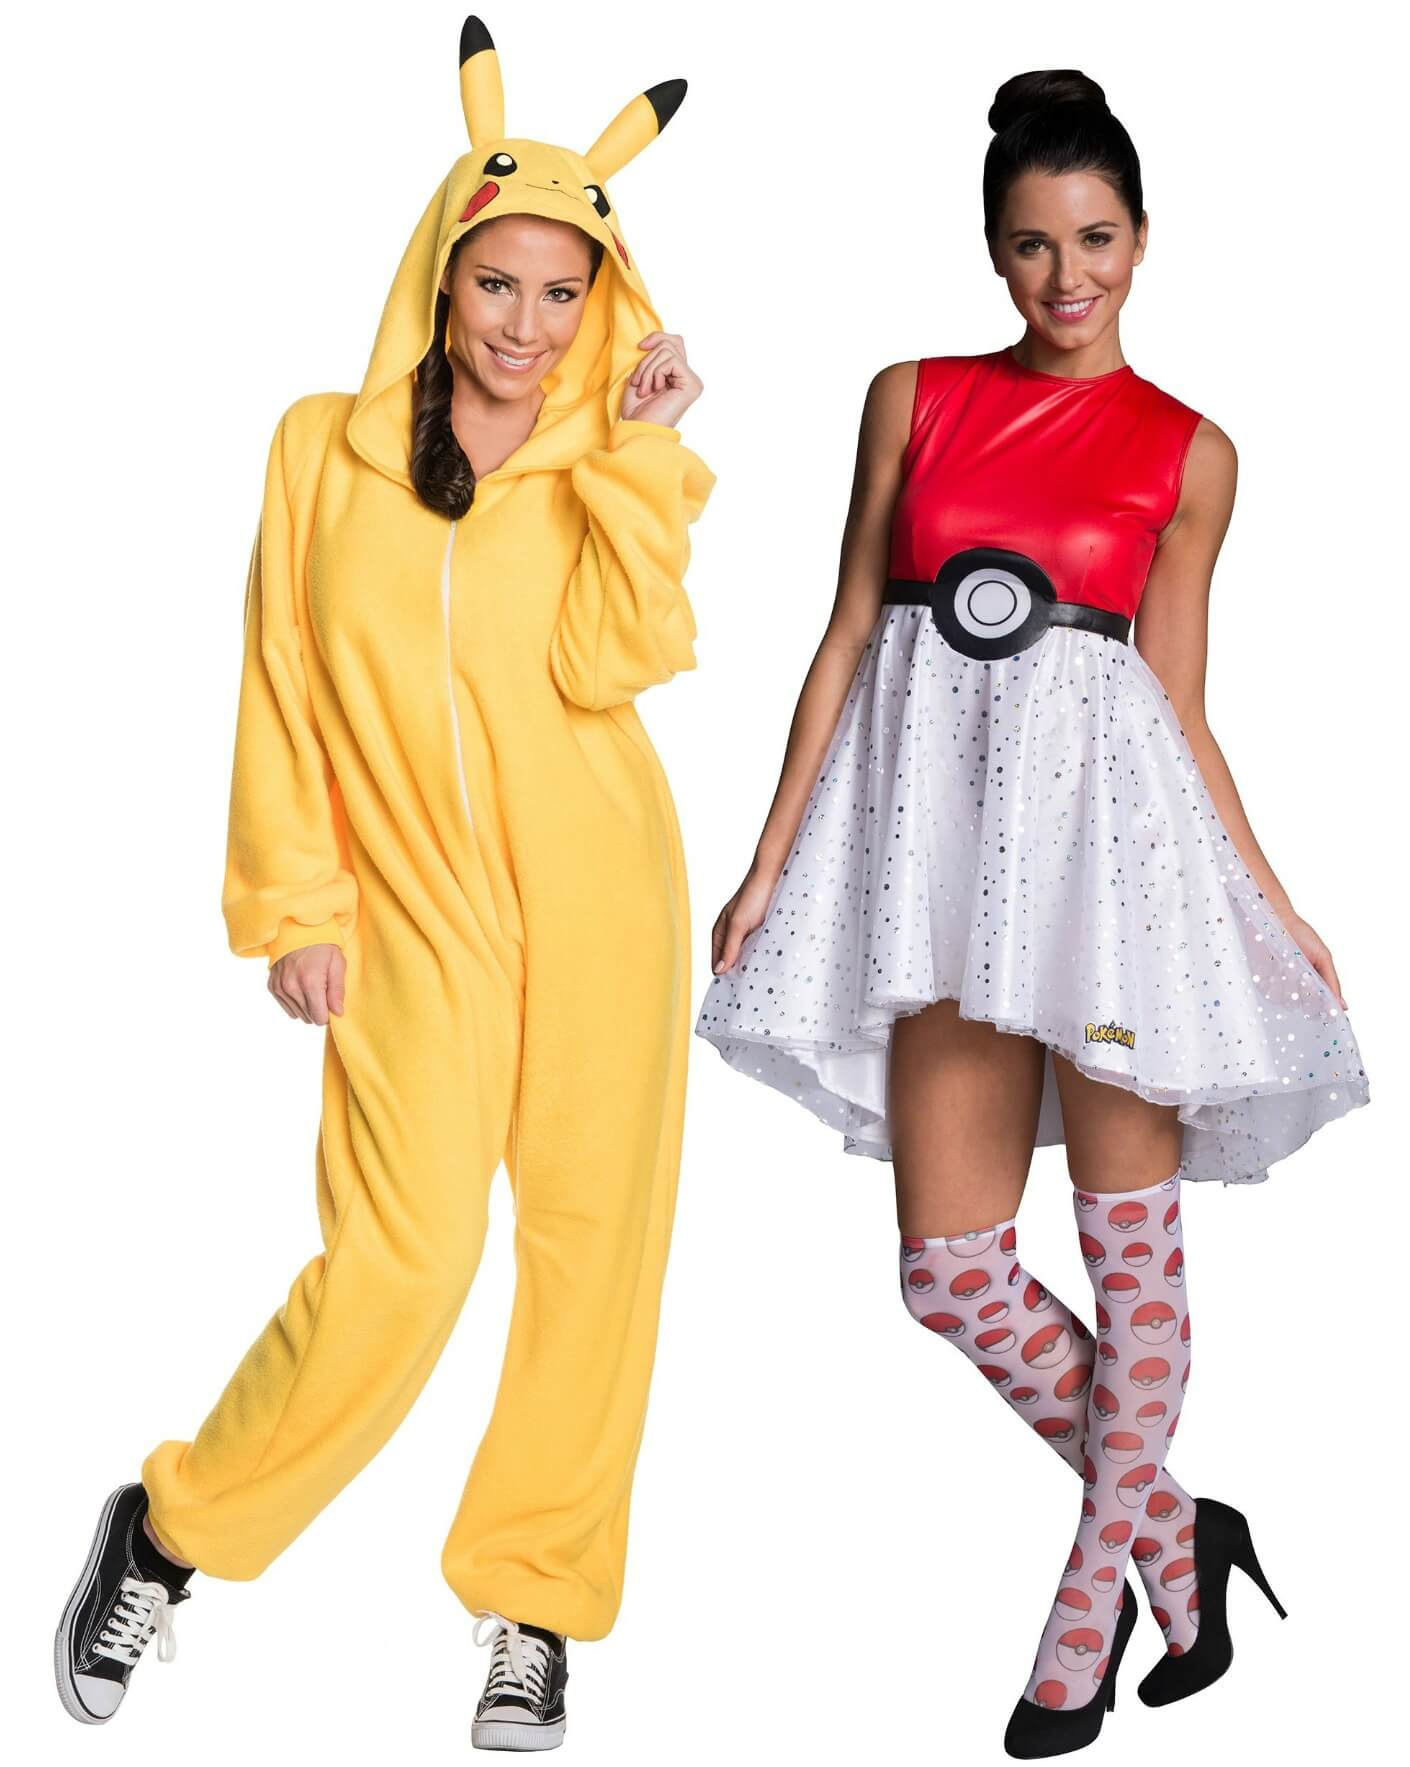 pikachu and pok ball halloween costumes